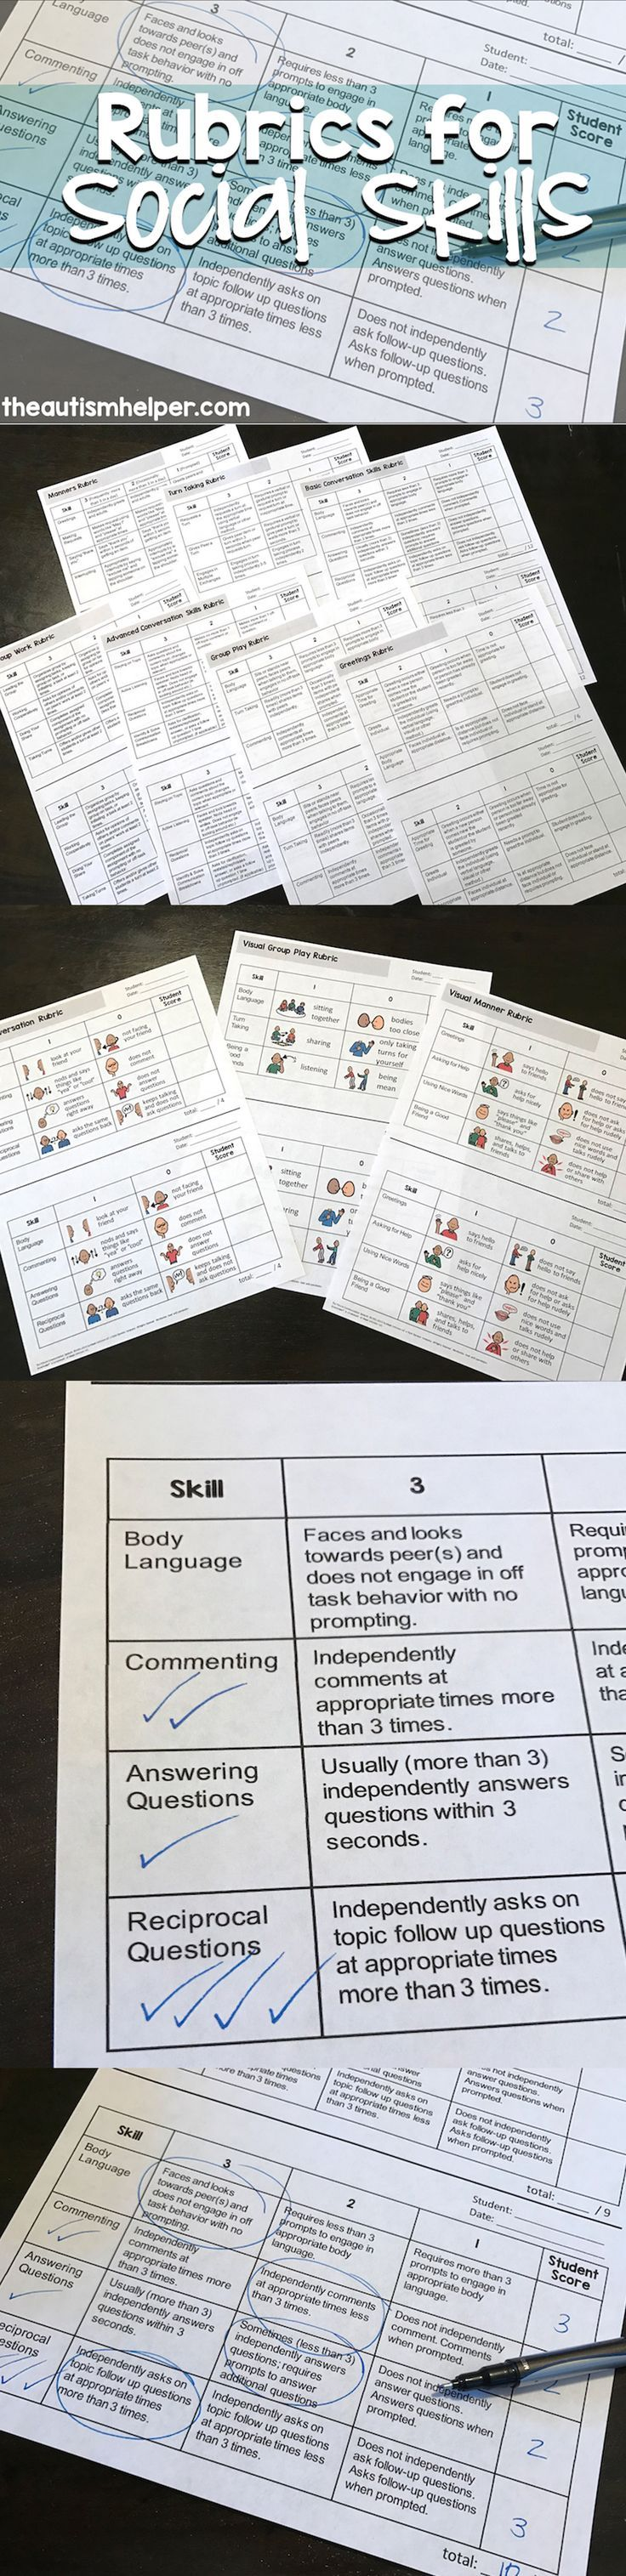 Our Social Skills Rubrics will help you take data on difficult social skills so you can track growth & areas of need!! From http://theautismhelper.com #theautismhelper